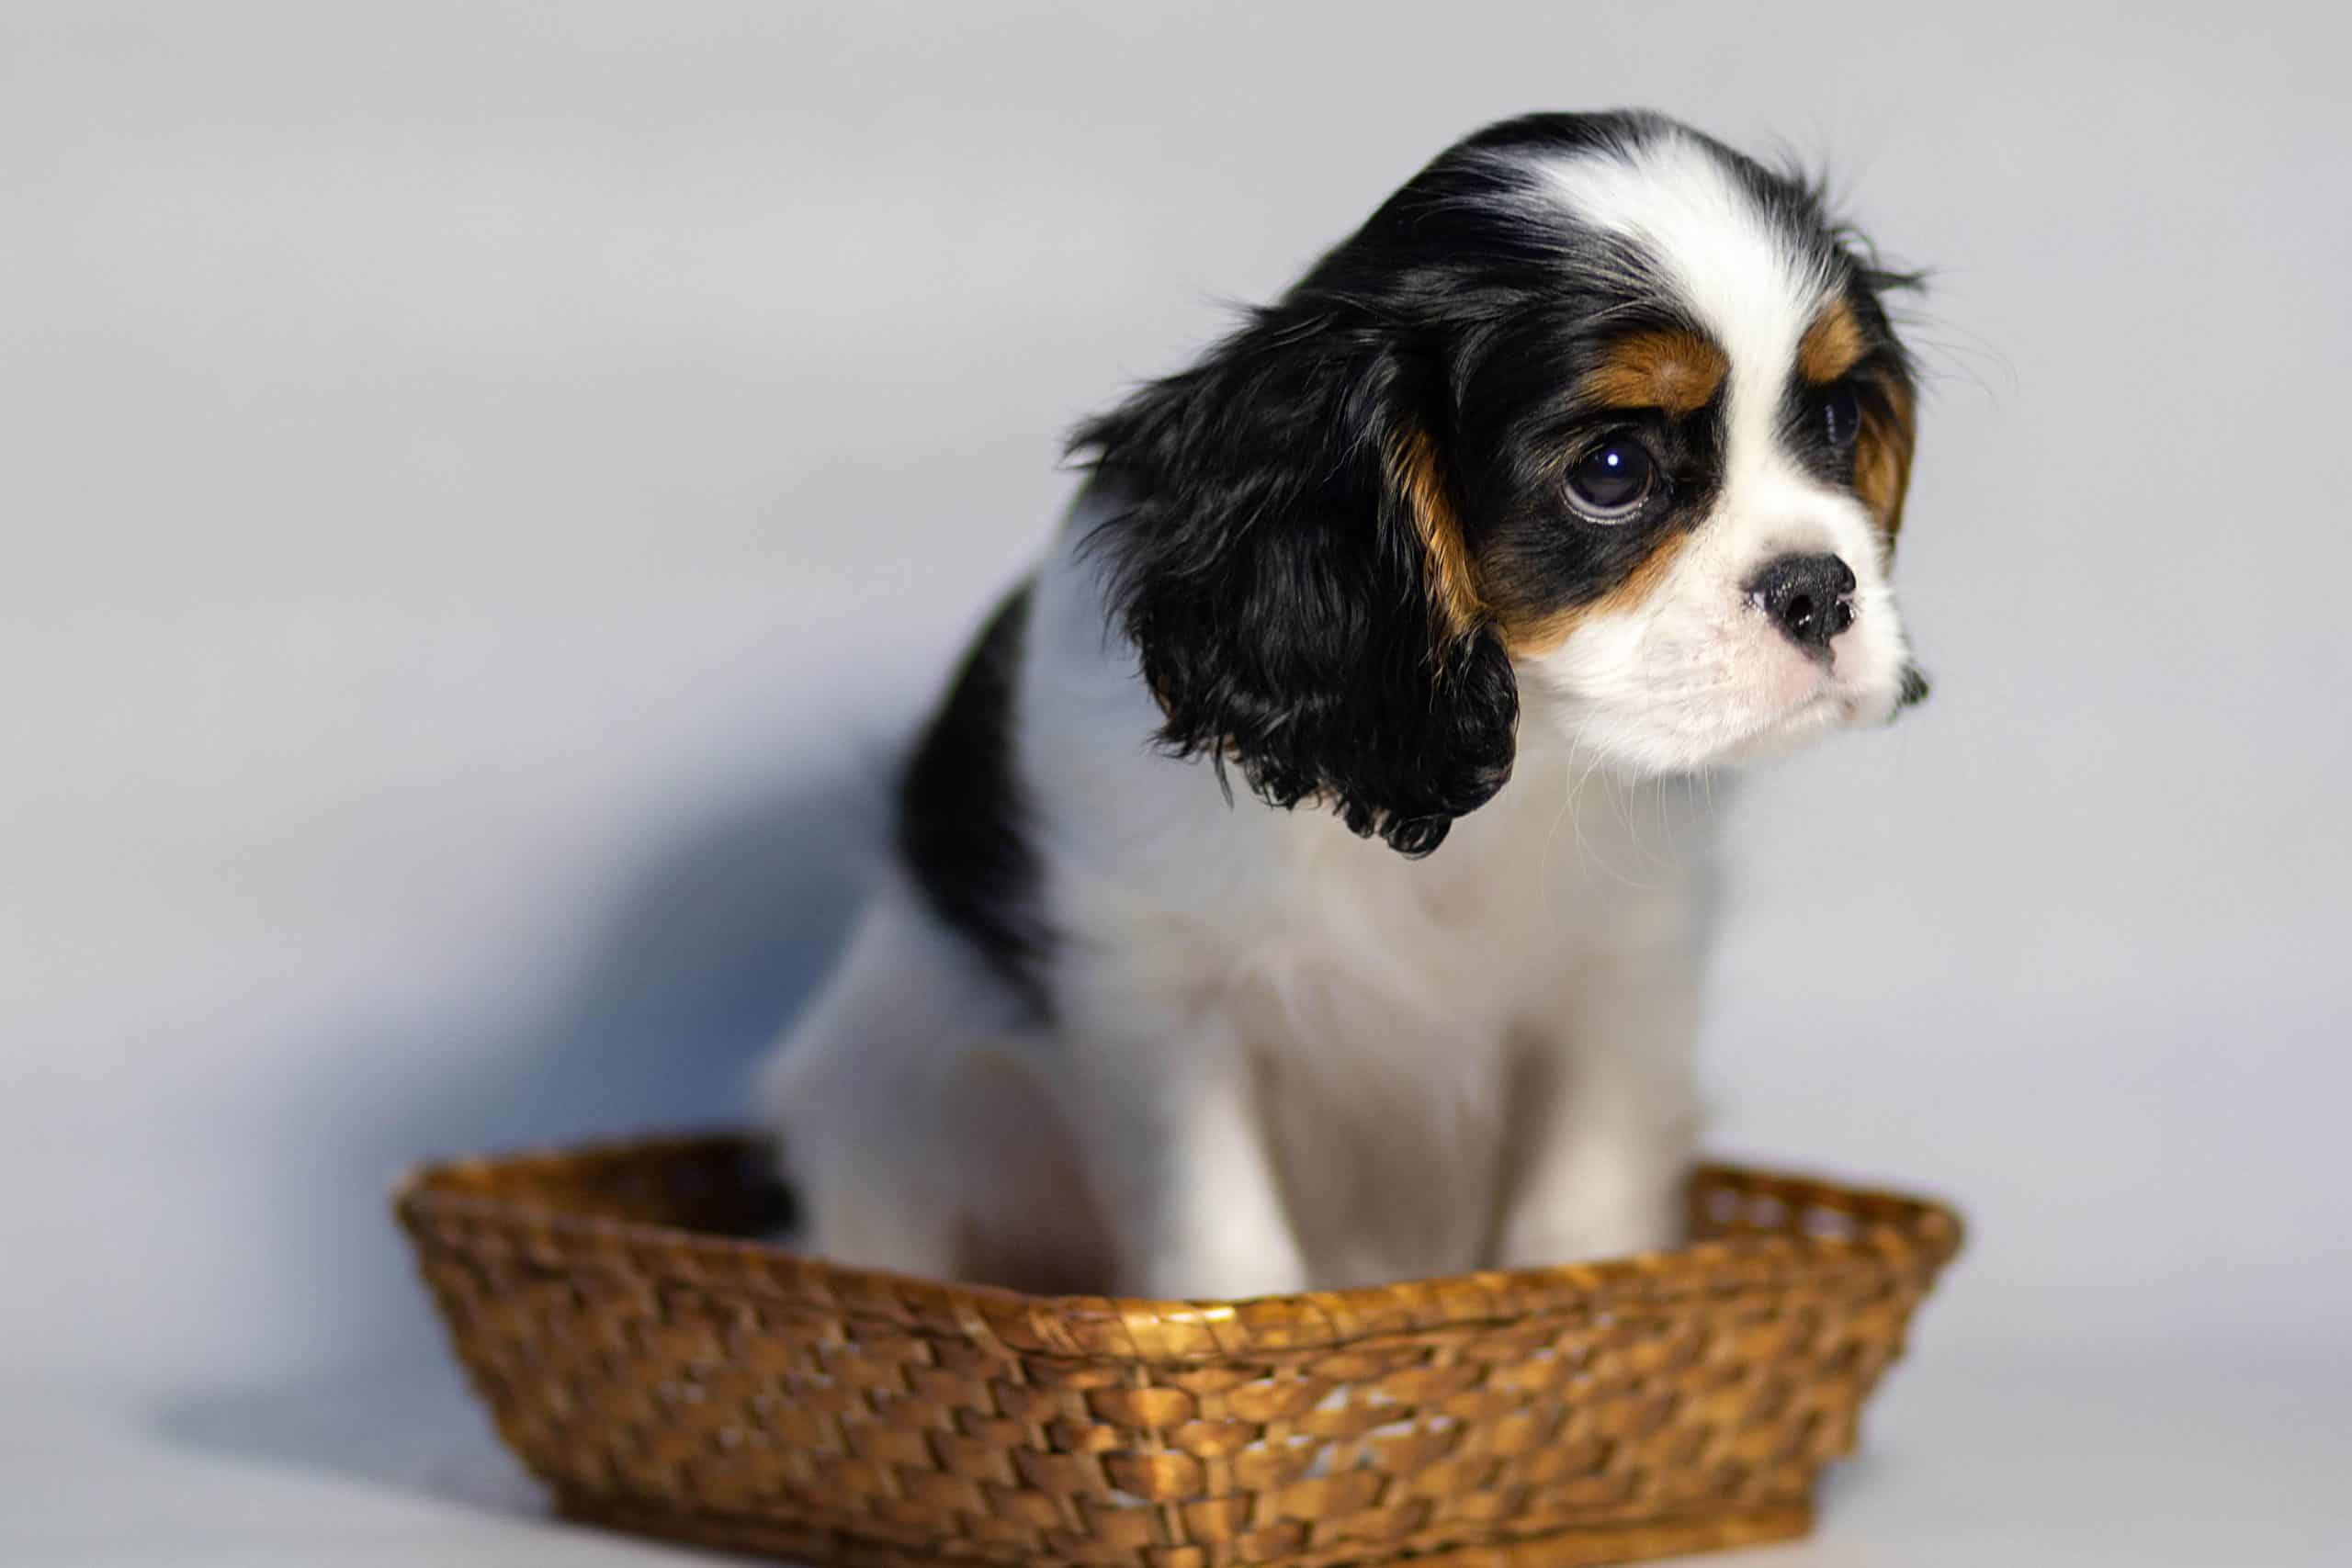 Cavalier King Charles Spaniel puppy sits in a basket.